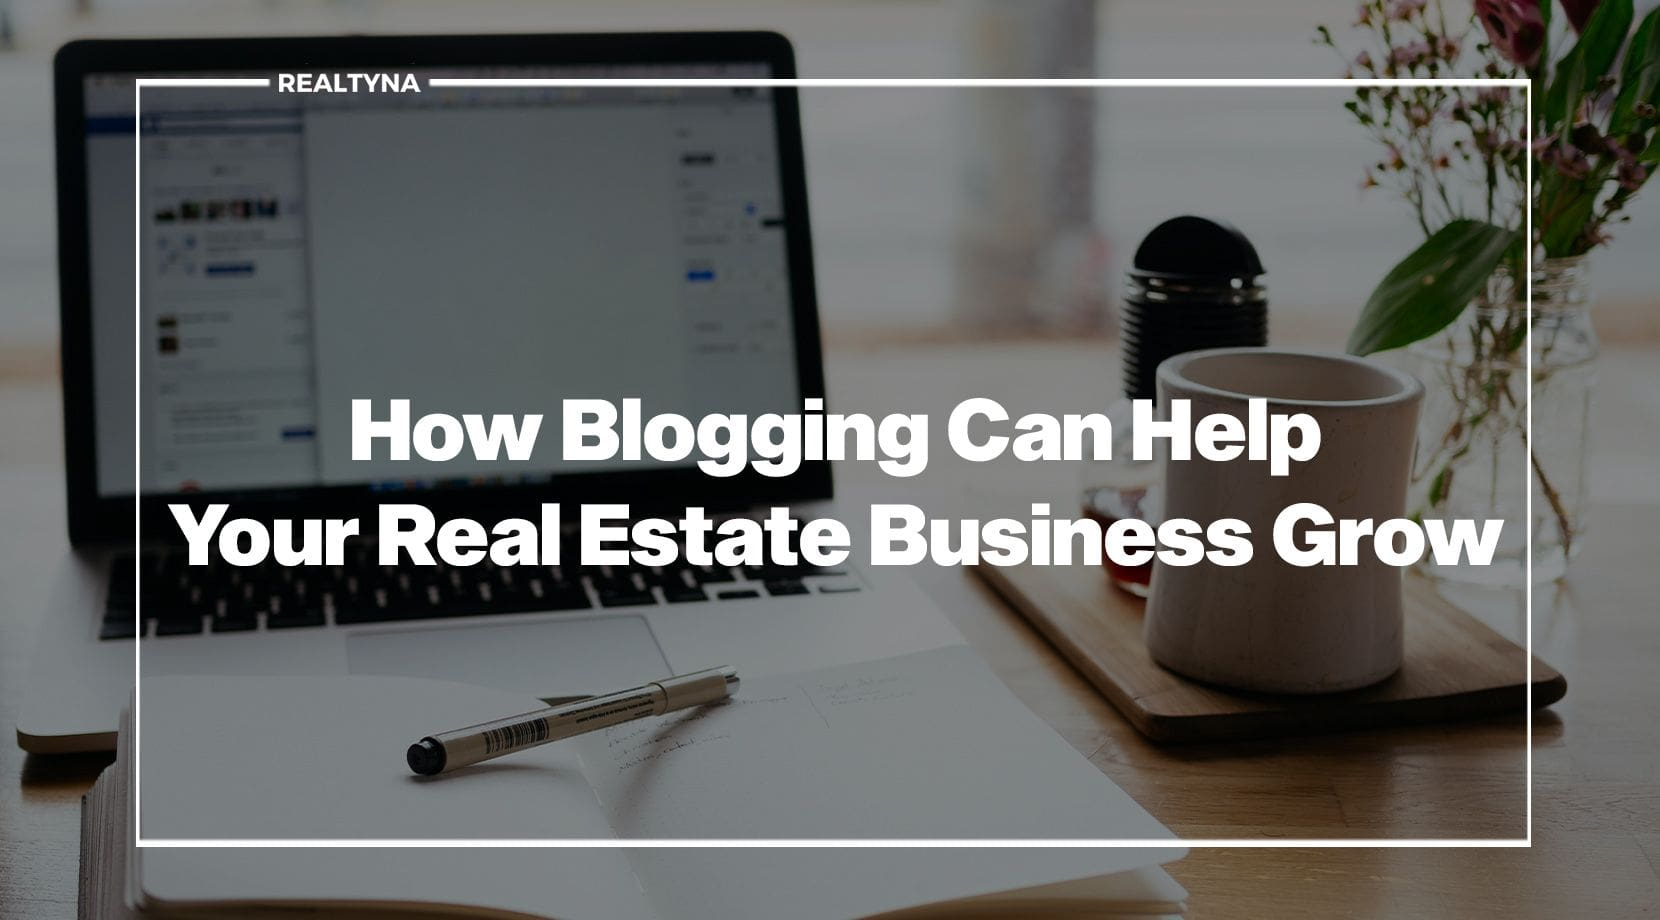 How Blogging Can Help Your Real Estate Business Grow